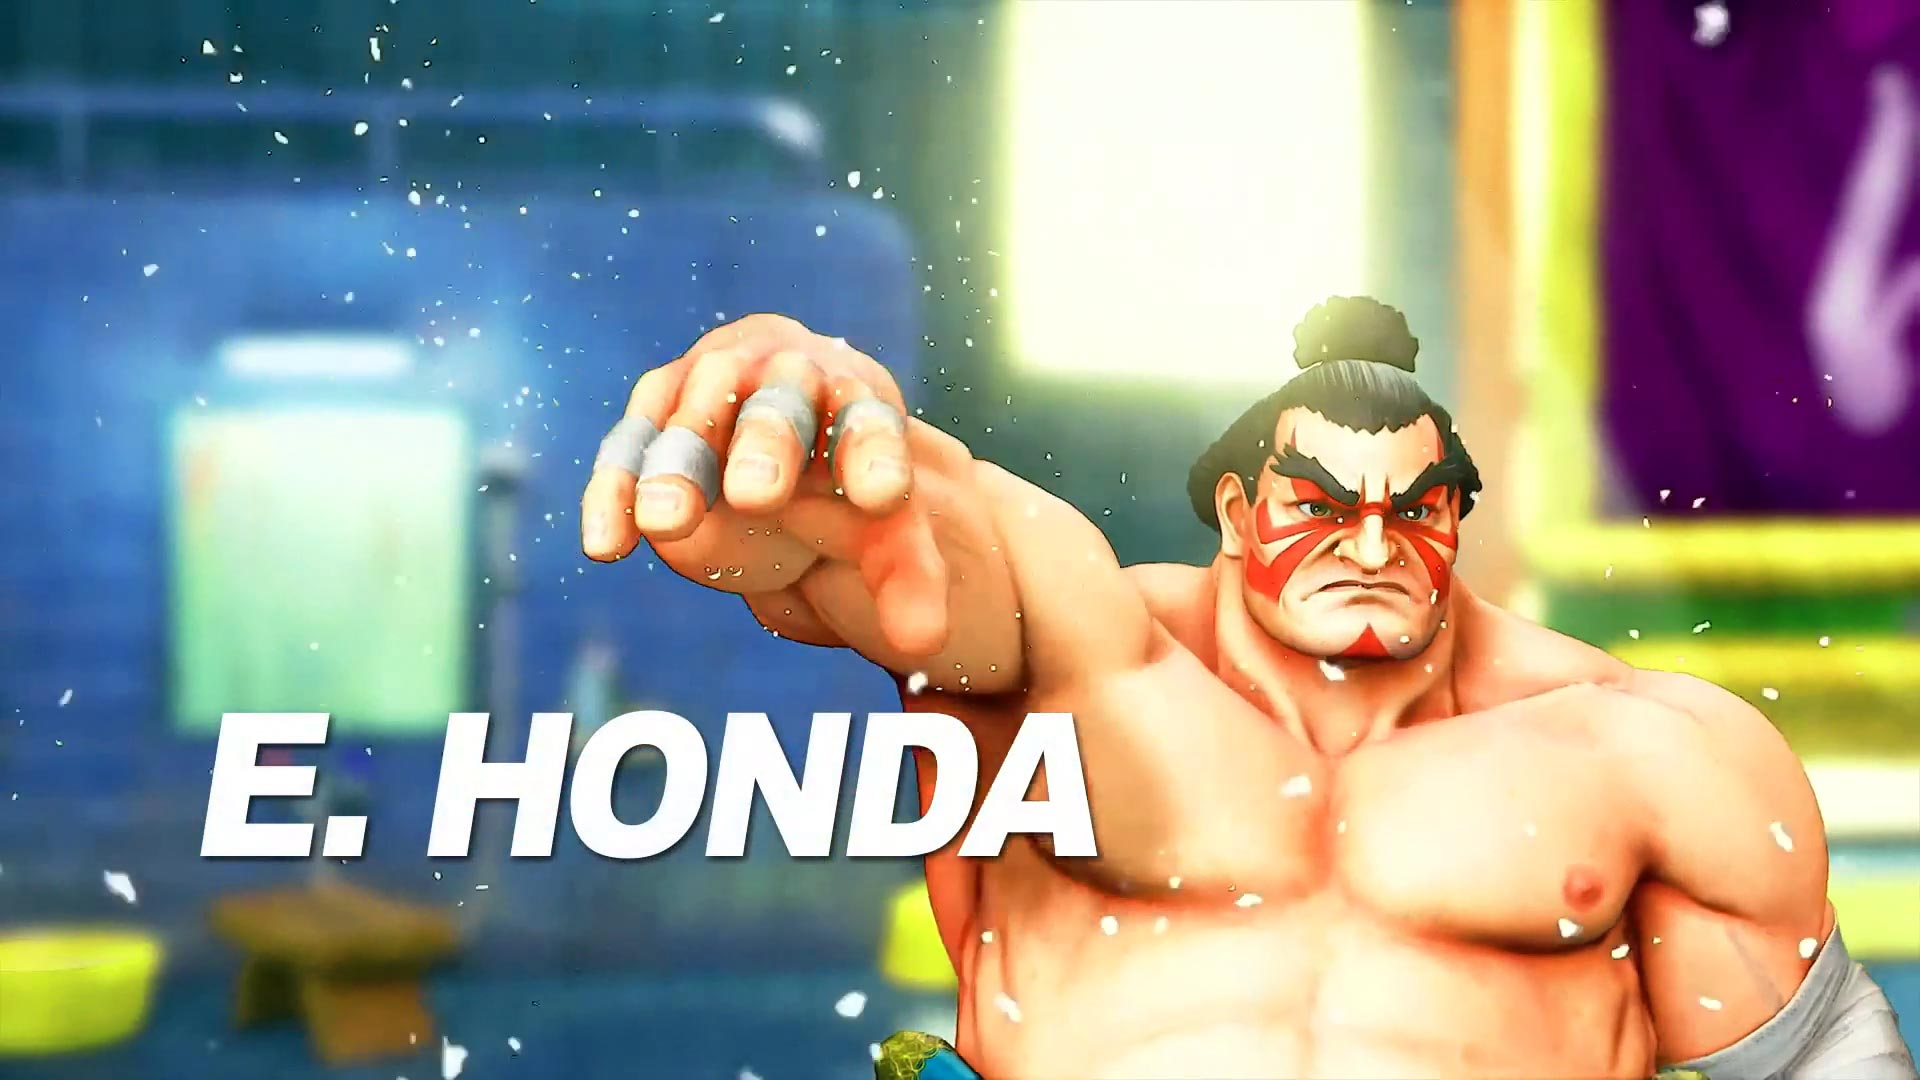 Street Fighter 5 leaked gallery of E. Honda, Lucia and Poison 6 out of 35 image gallery